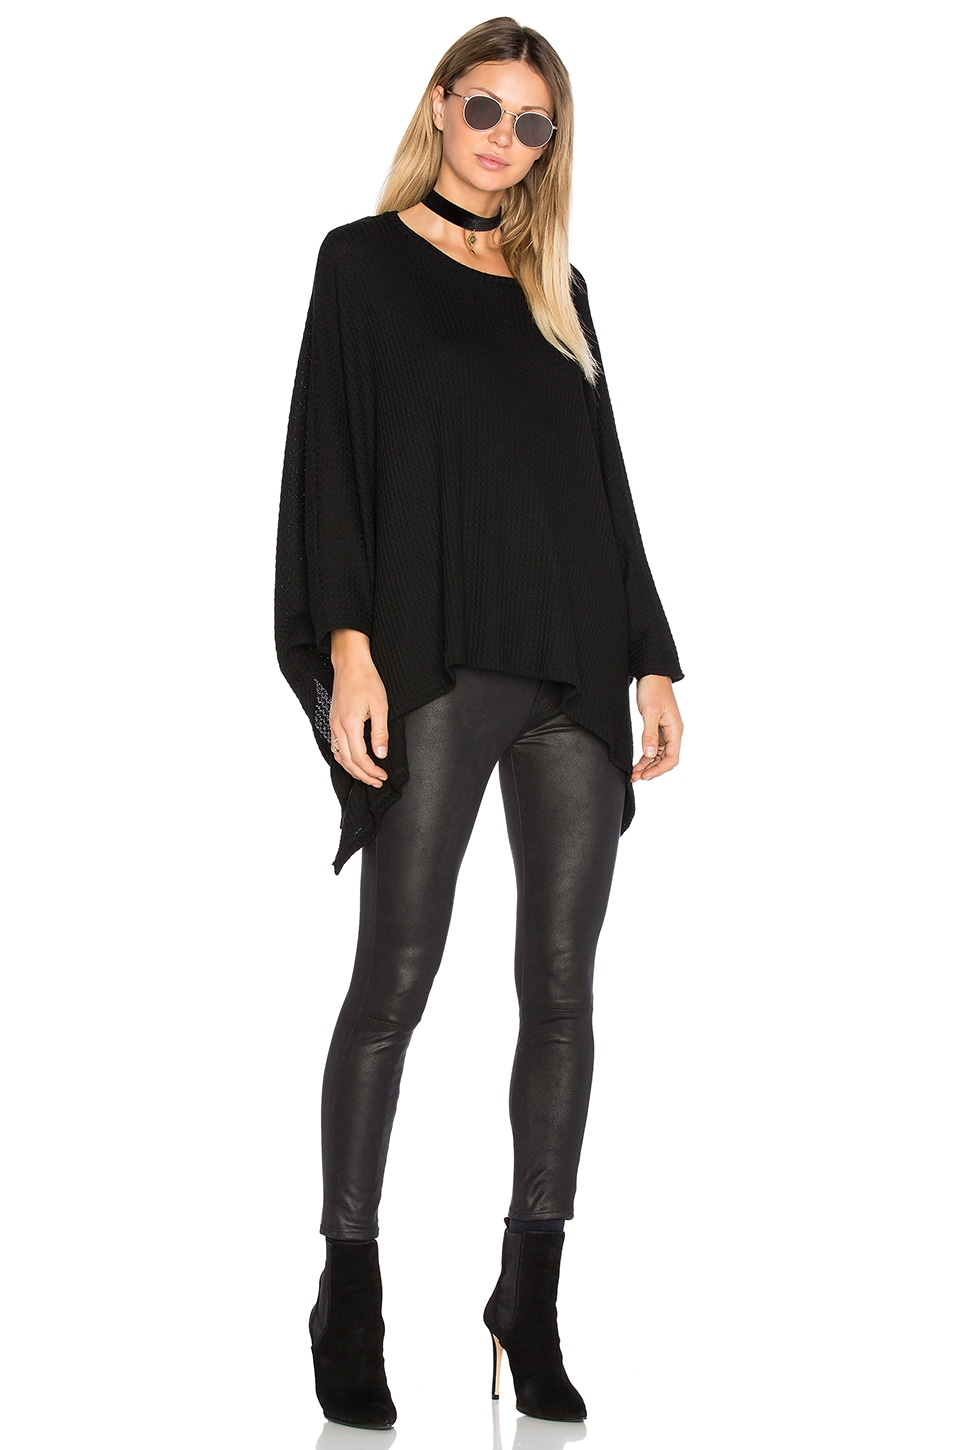 Michael Lauren Orrick Cape in Black Waffle